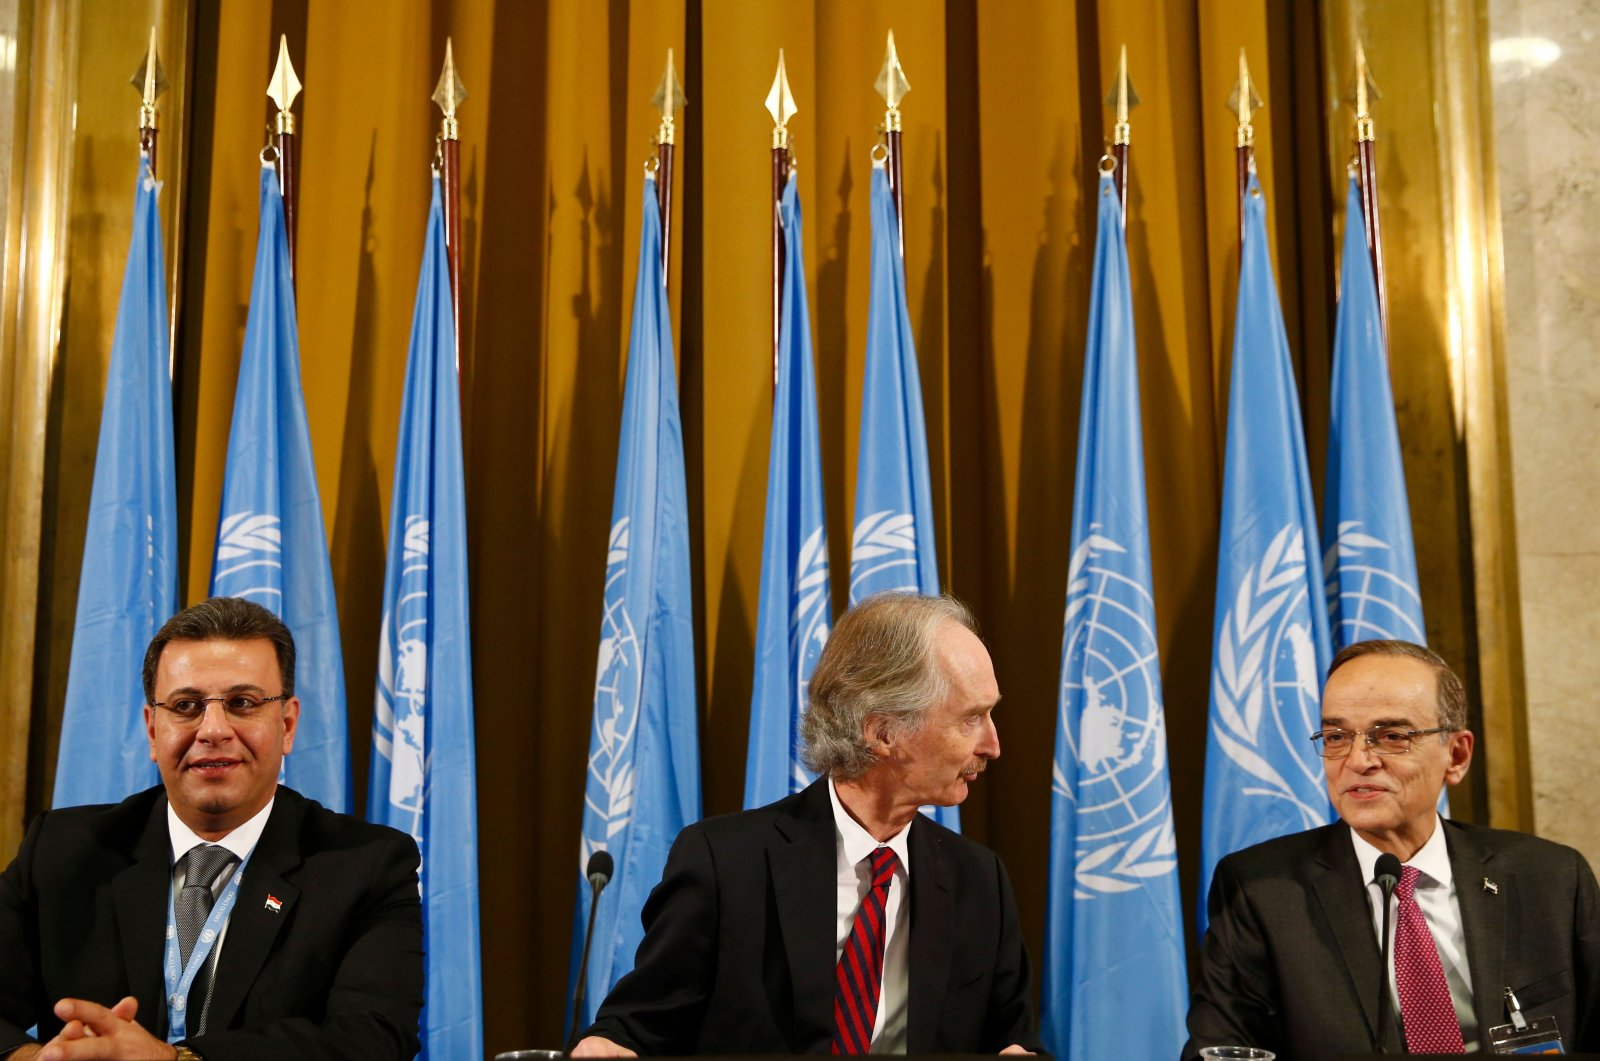 U.N. Special Envoy to Syria Geir Pedersen (C), co-chair Syrian parliament member Ahmad Al-Kuzbari (L) and opposition co-chair Hadi Al-Bahra attend a ceremony to mark the opening of a meeting of the Syrian constitution-writing committee, at the United Nations Offices in Geneva, Switzerland, Oct. 30, 2019. (AFP Photo)